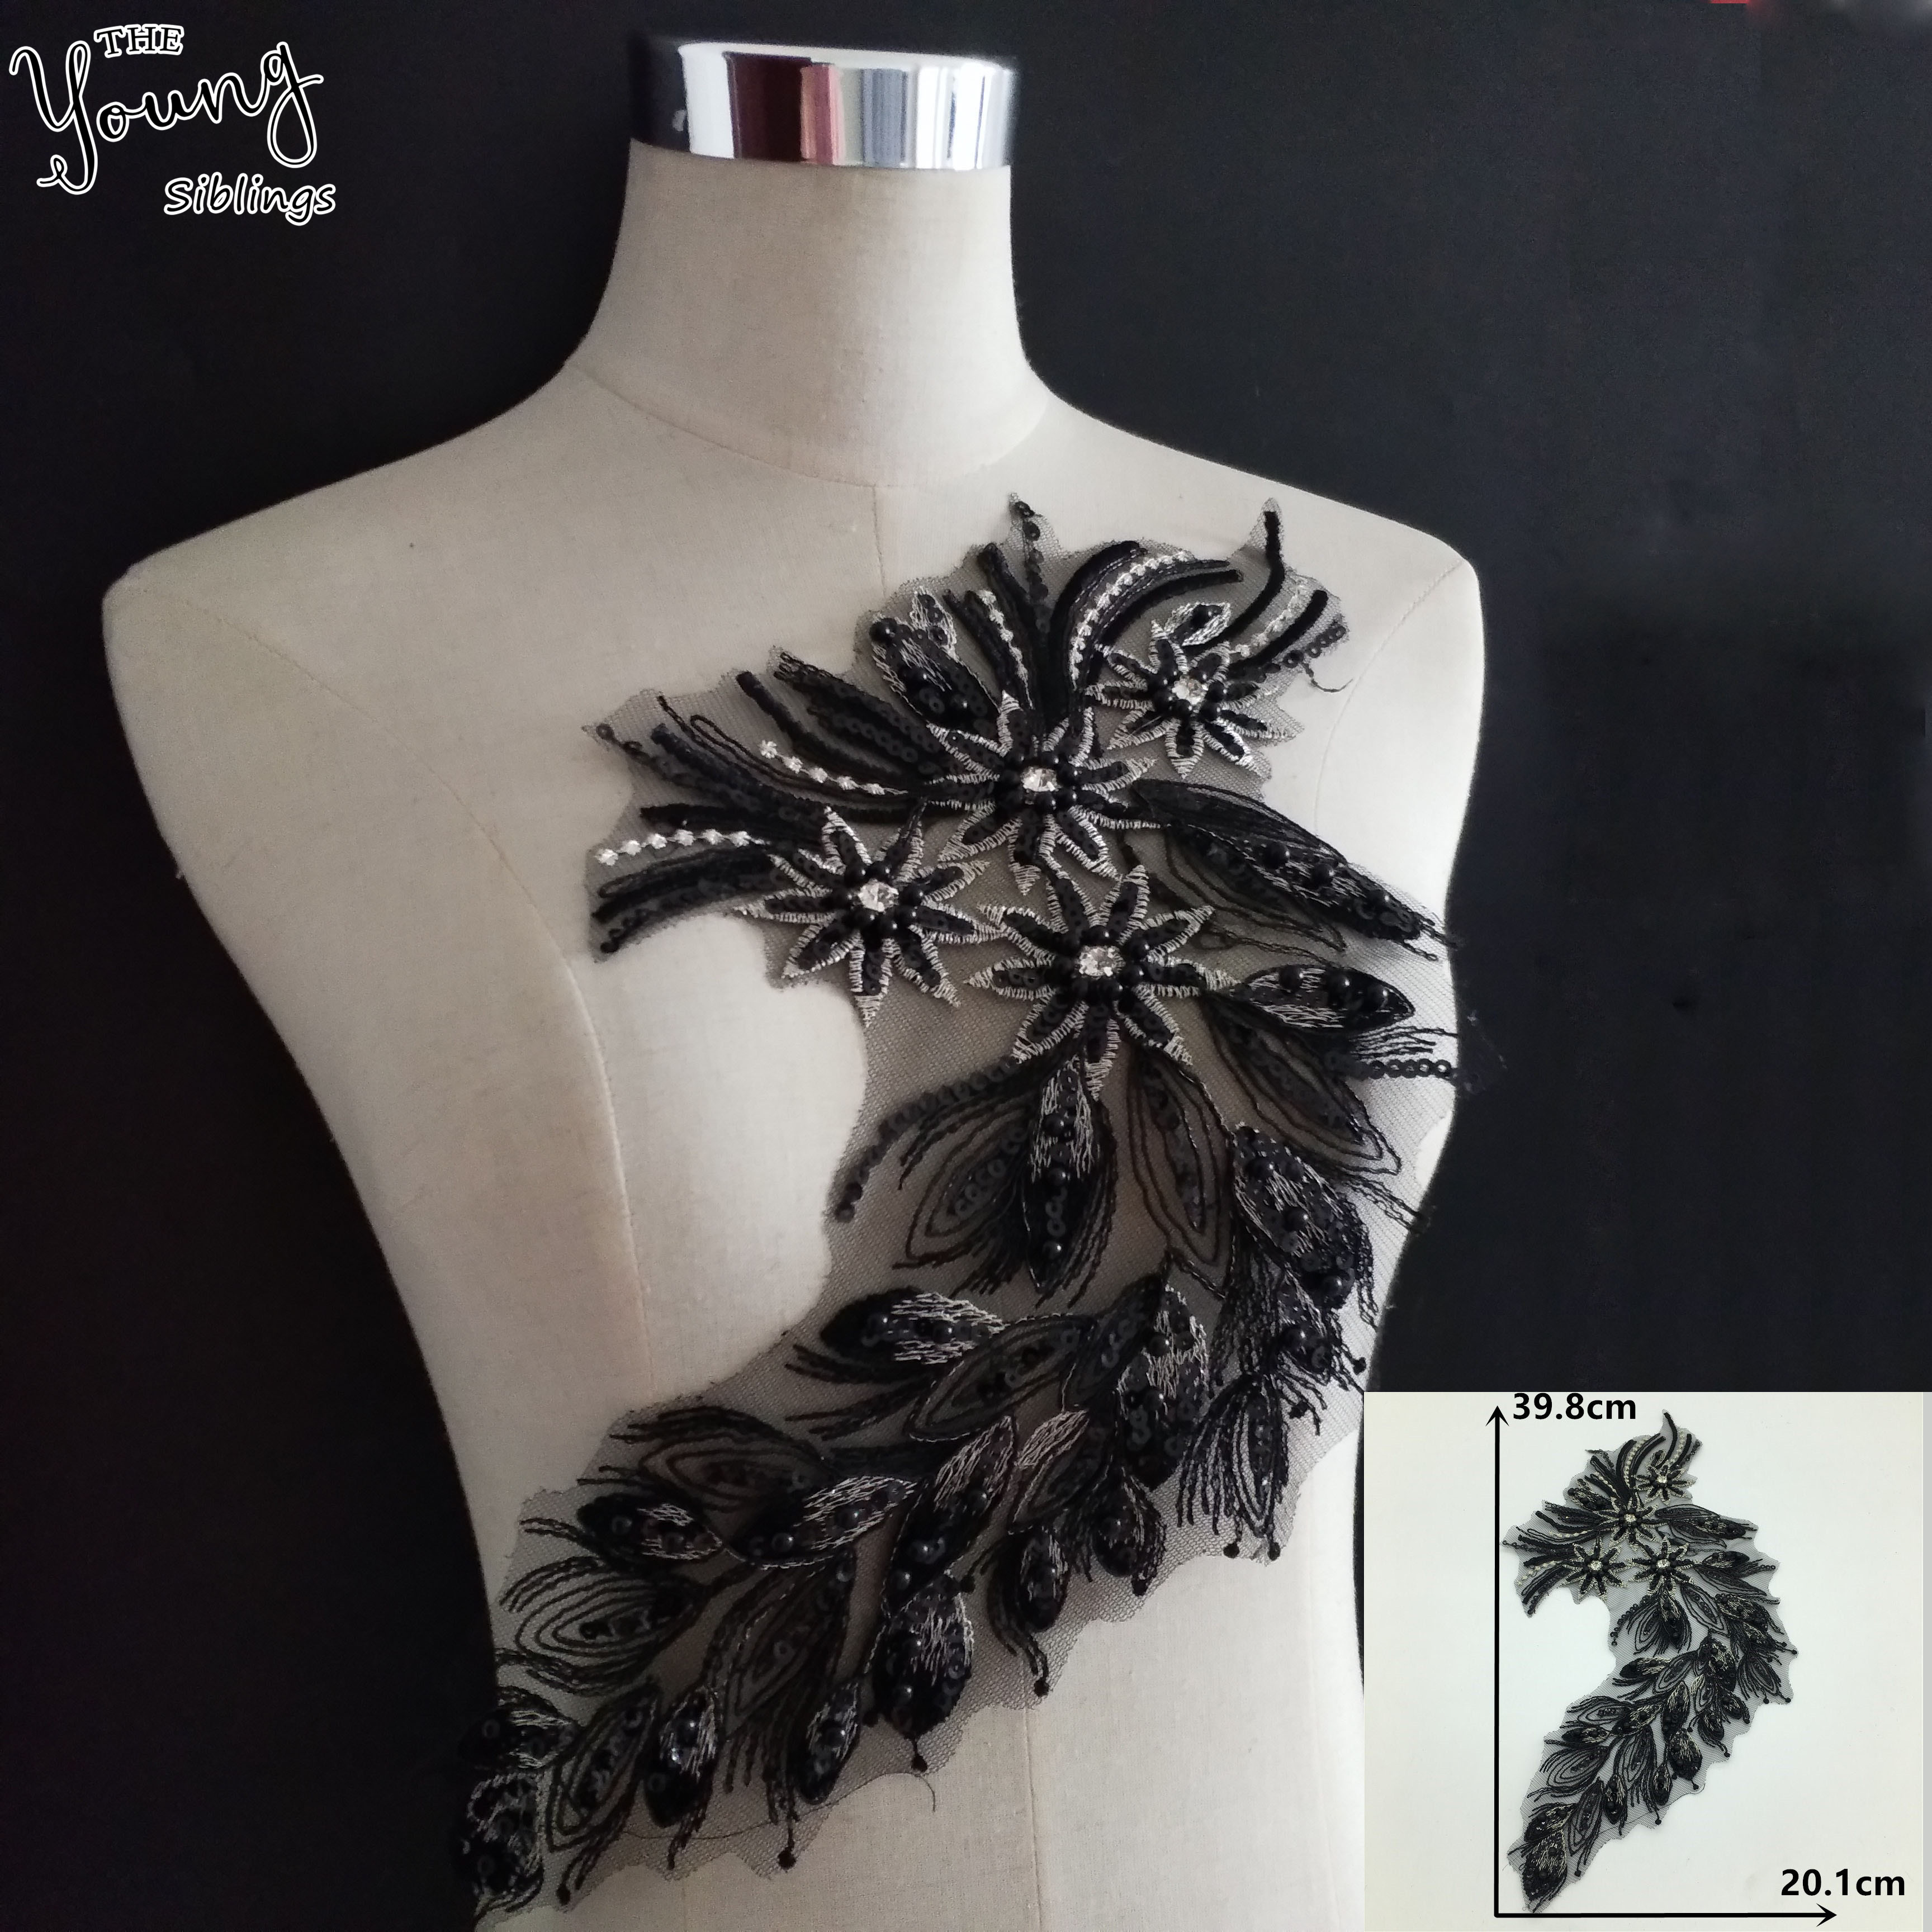 High quality black nail bead imitation pearl lace mesh lace decorative dress accessories DIY accessories